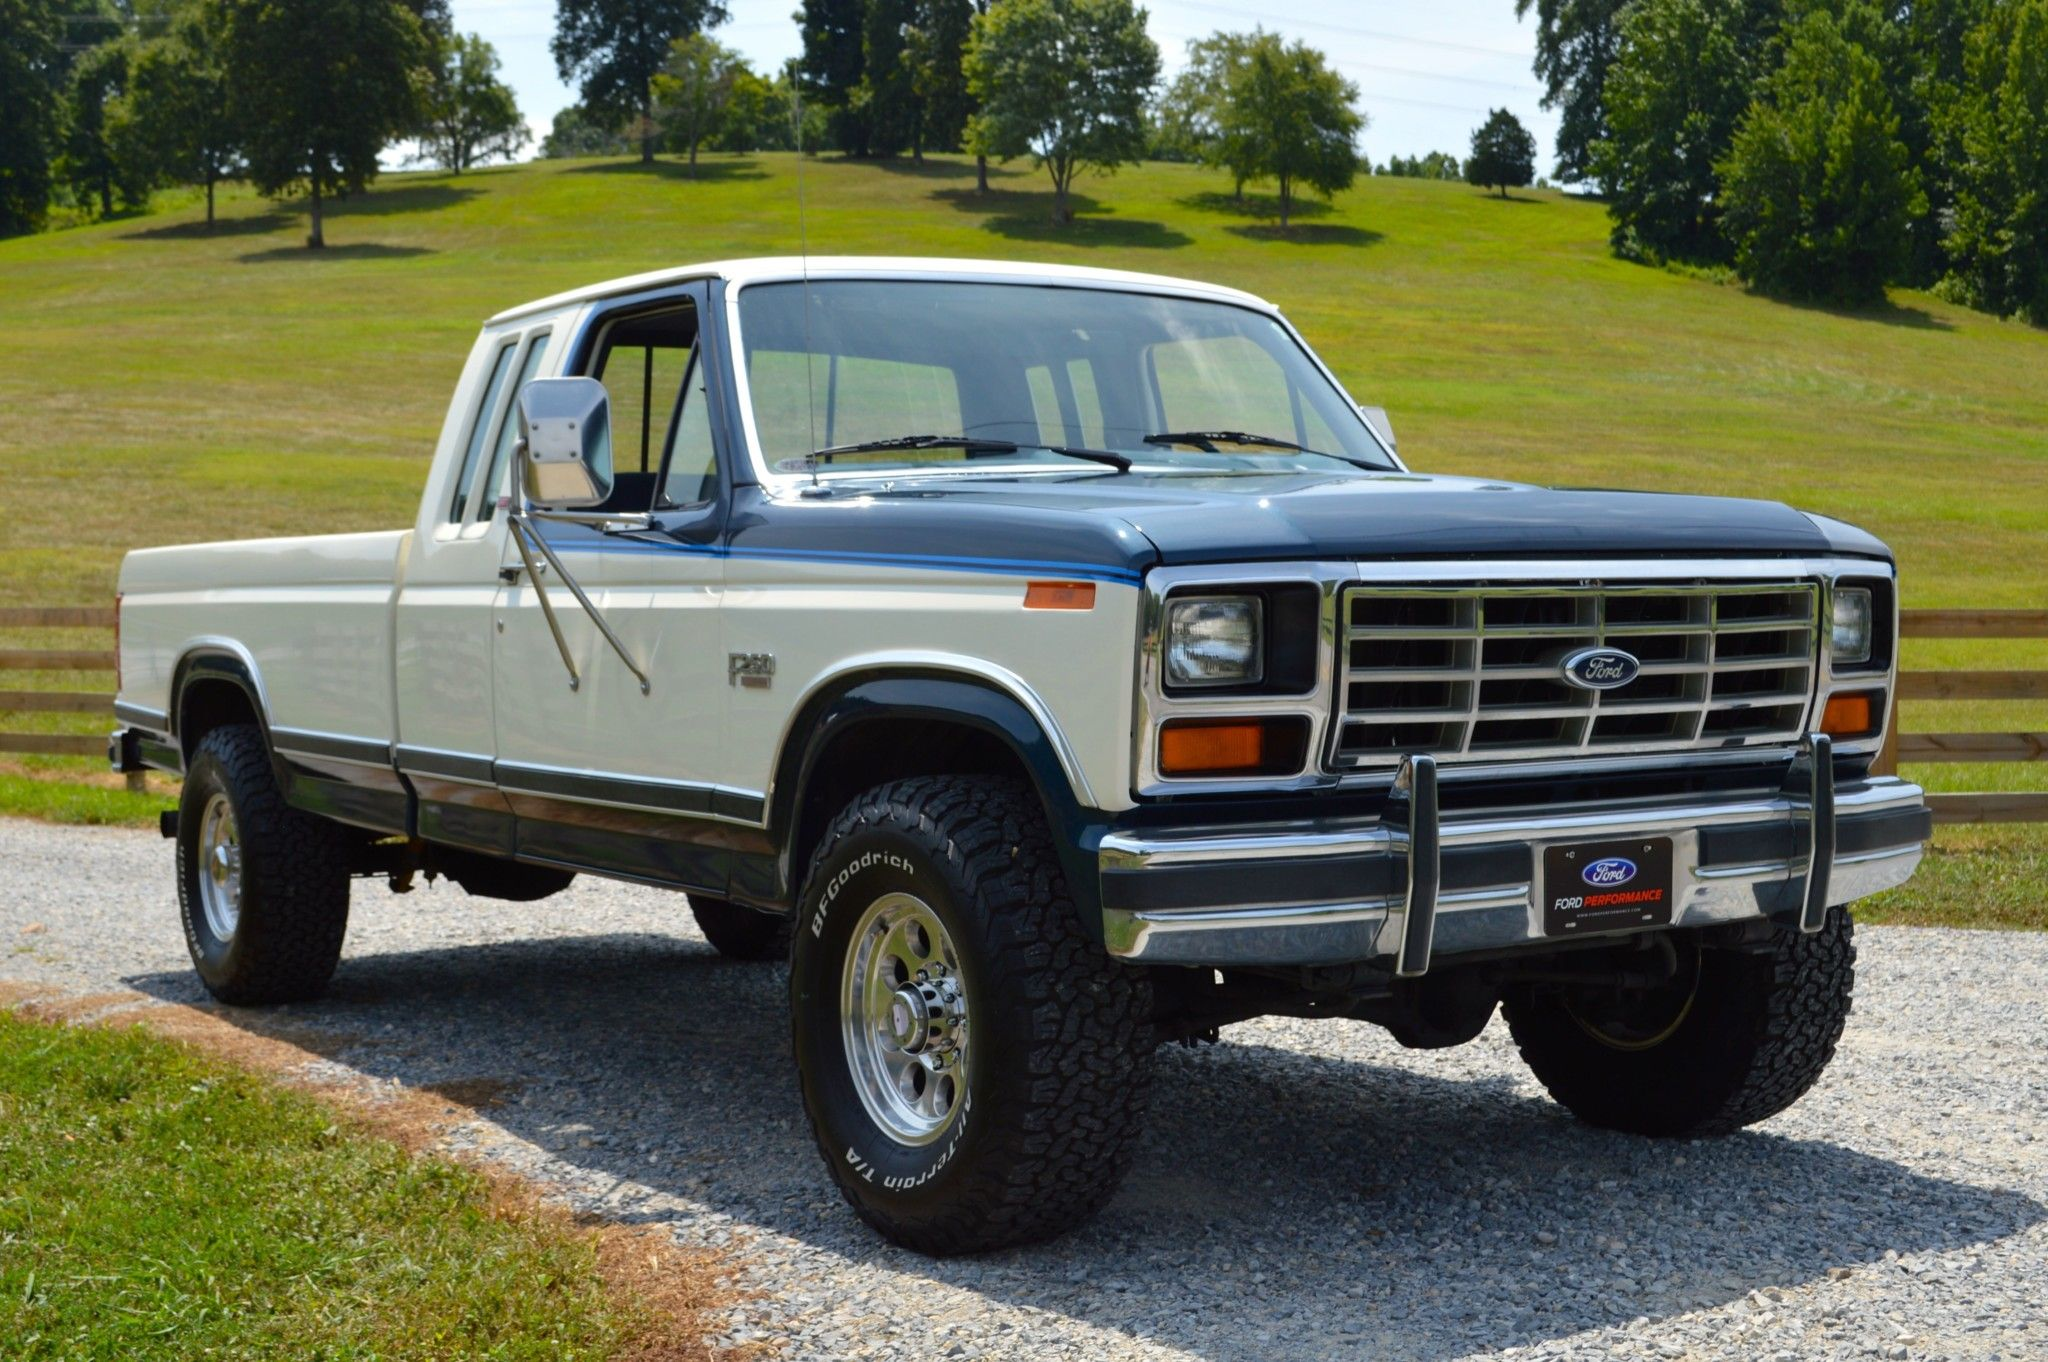 1986 Ford F 250 Xlt Lariat Supercab 4x4 4 Speed Ford Pickup Trucks Trucks Classic Ford Trucks